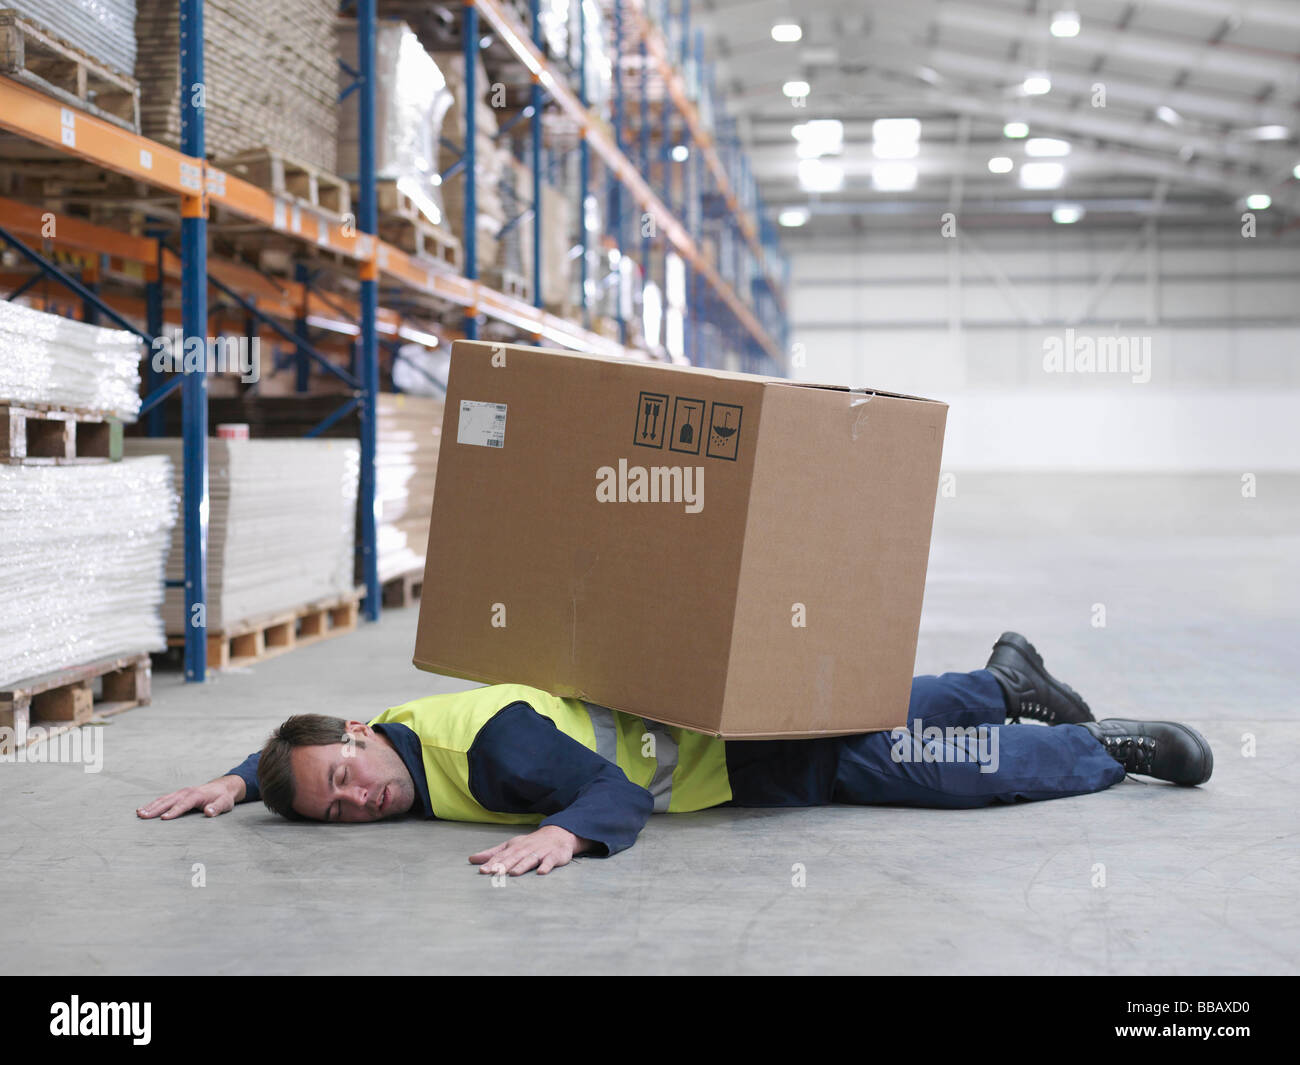 Worker Flattened By Box In Warehouse - Stock Image